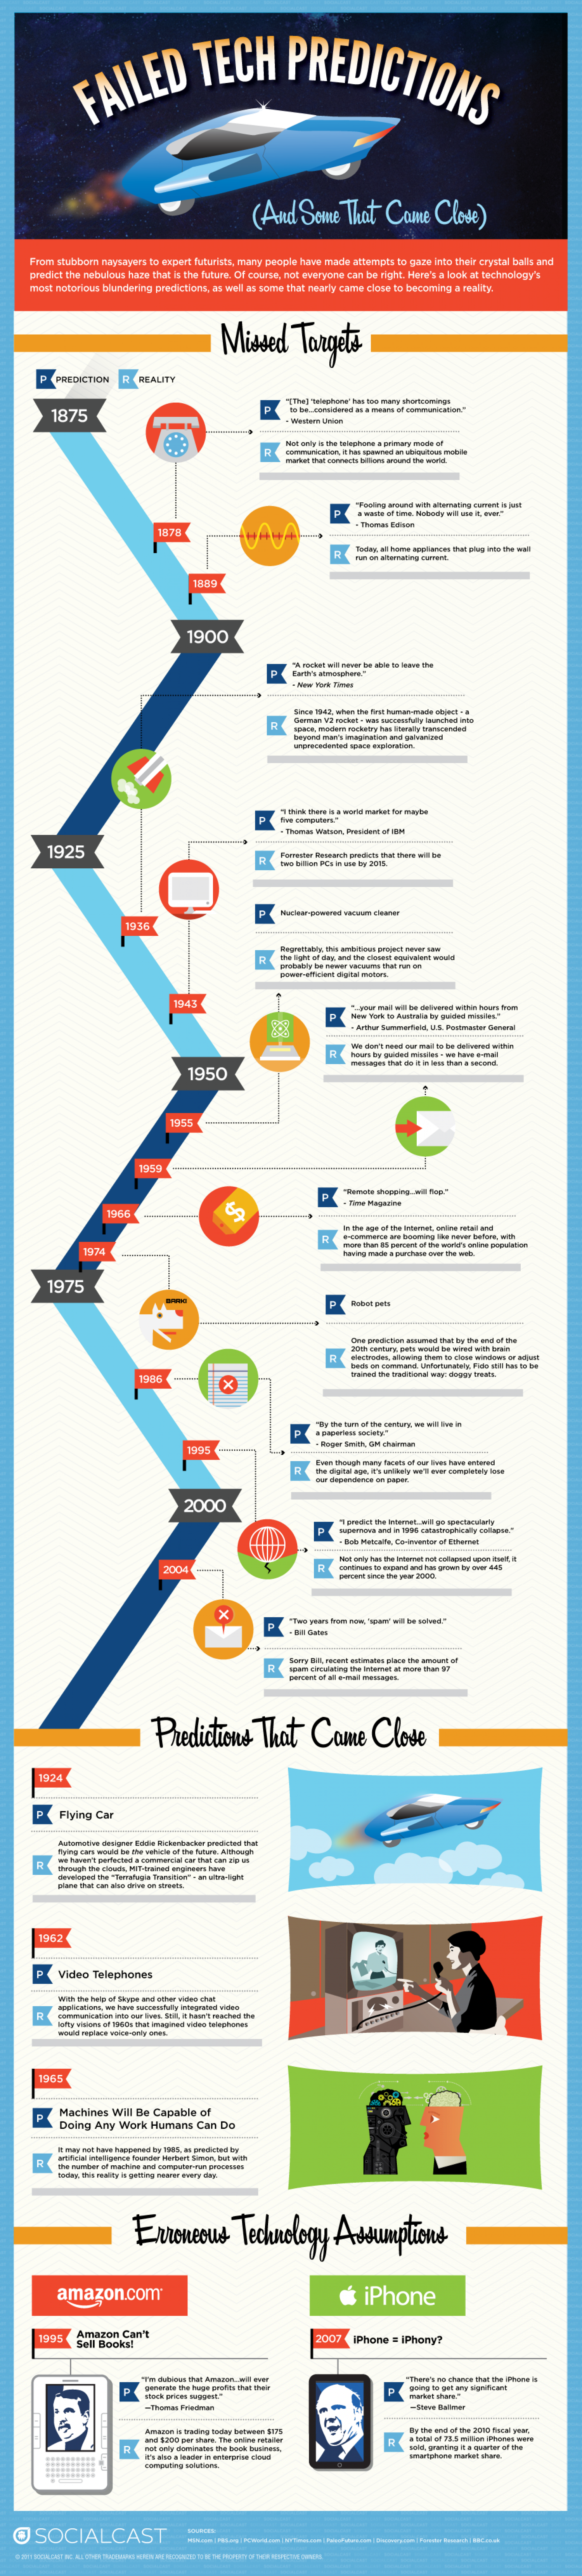 Failed Tech Predictions Infographic